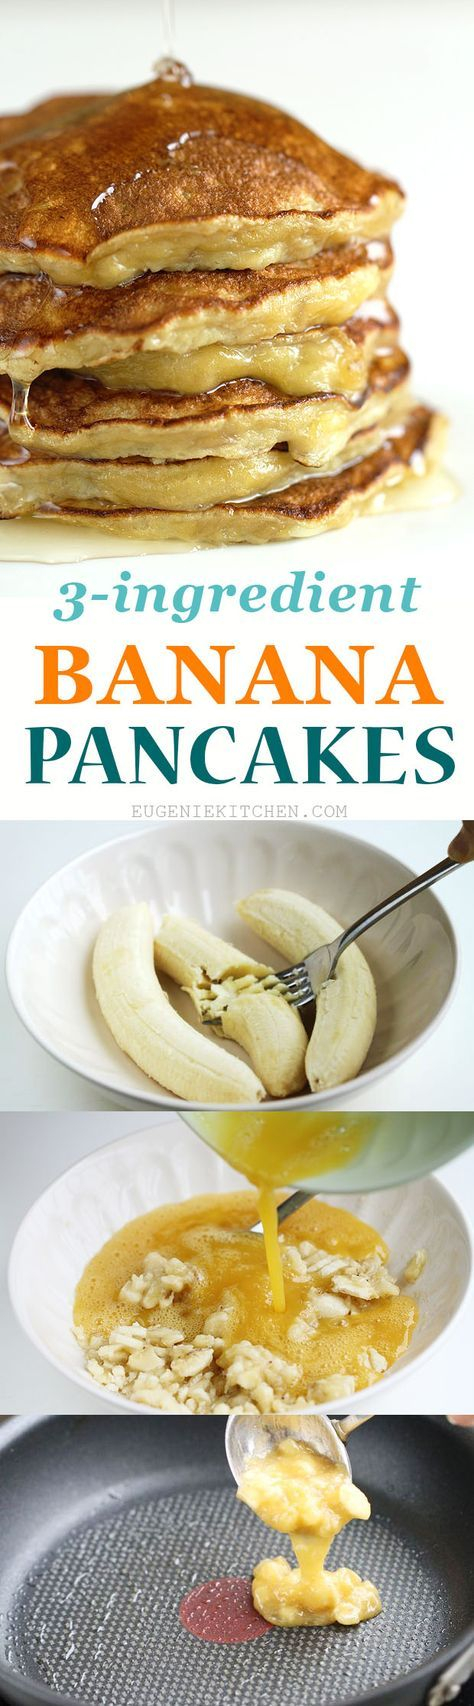 3-Ingredient Banana Pancakes Glueten-Free, Flourless, Low-Calorie #glutenfreebreakfasts